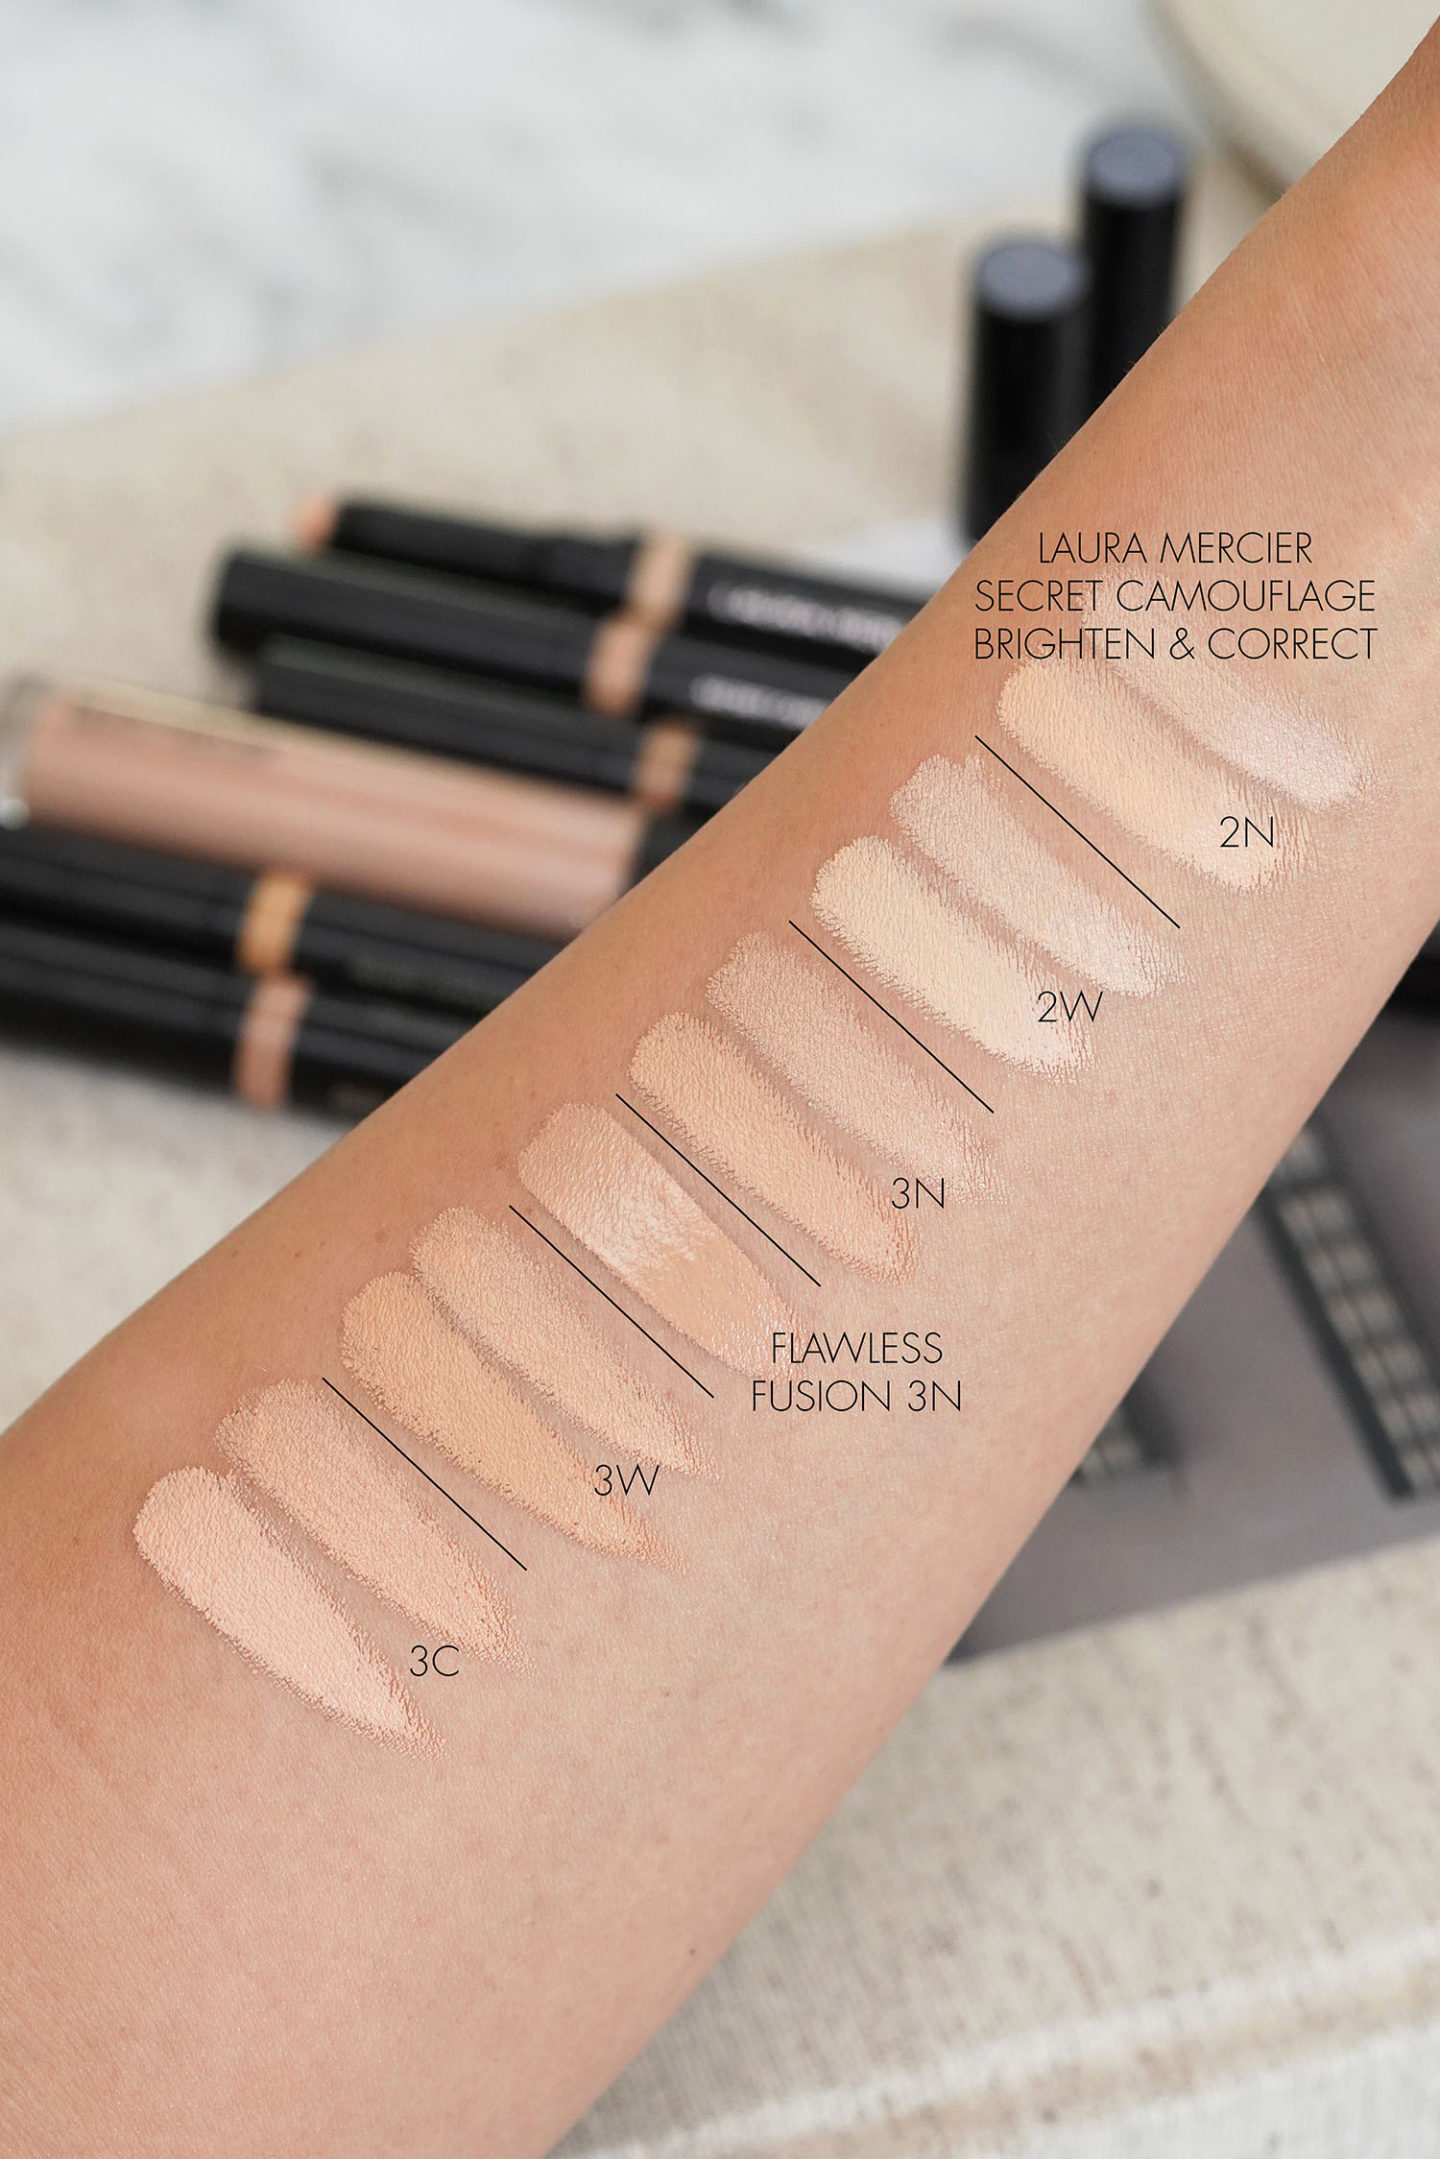 Laura Mercier Secret Camouflage Correct and Brighten Concealer Duo Swatches 2 and 3 family